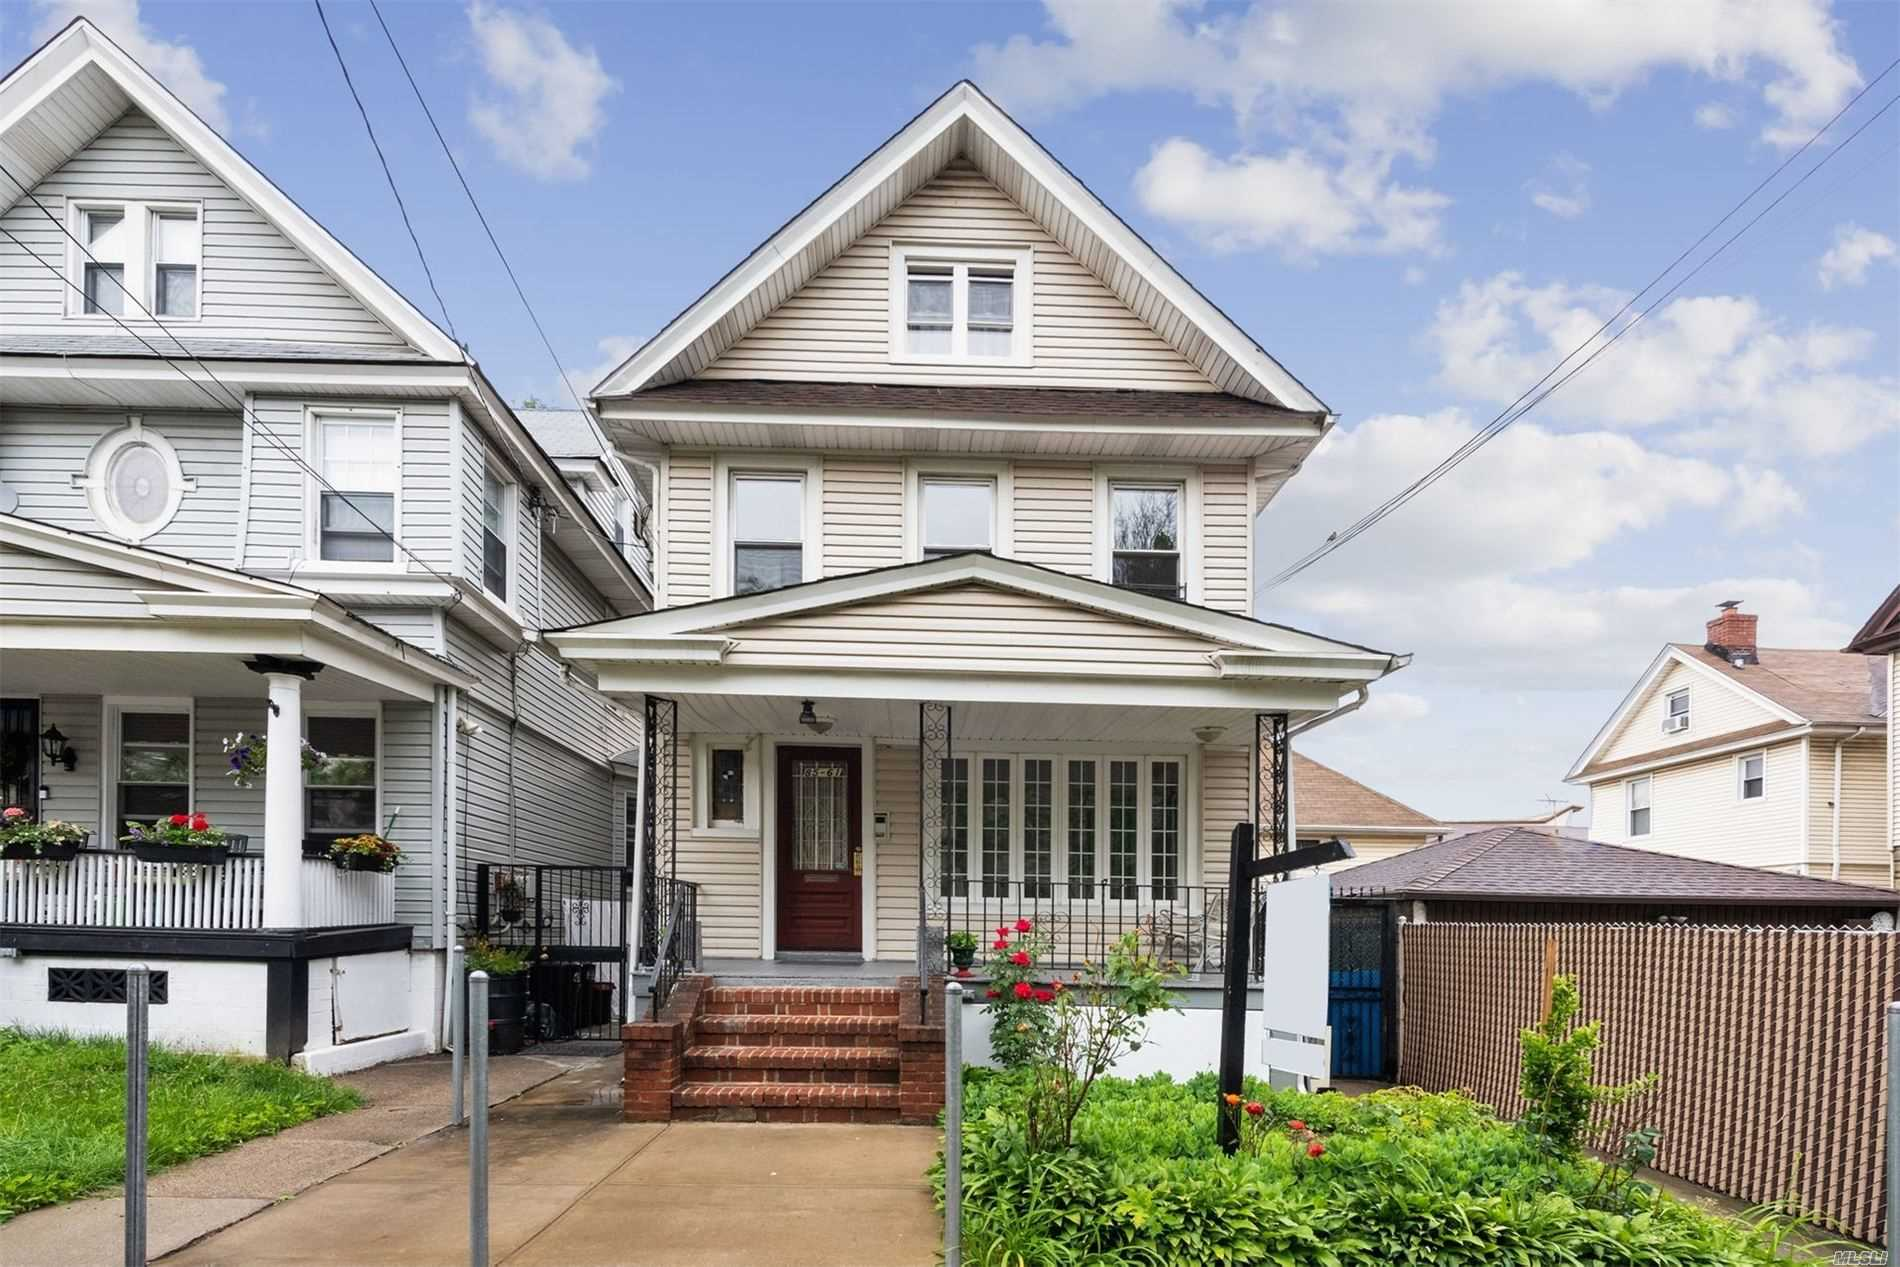 85-61 76th St Woodhaven, NY 11421